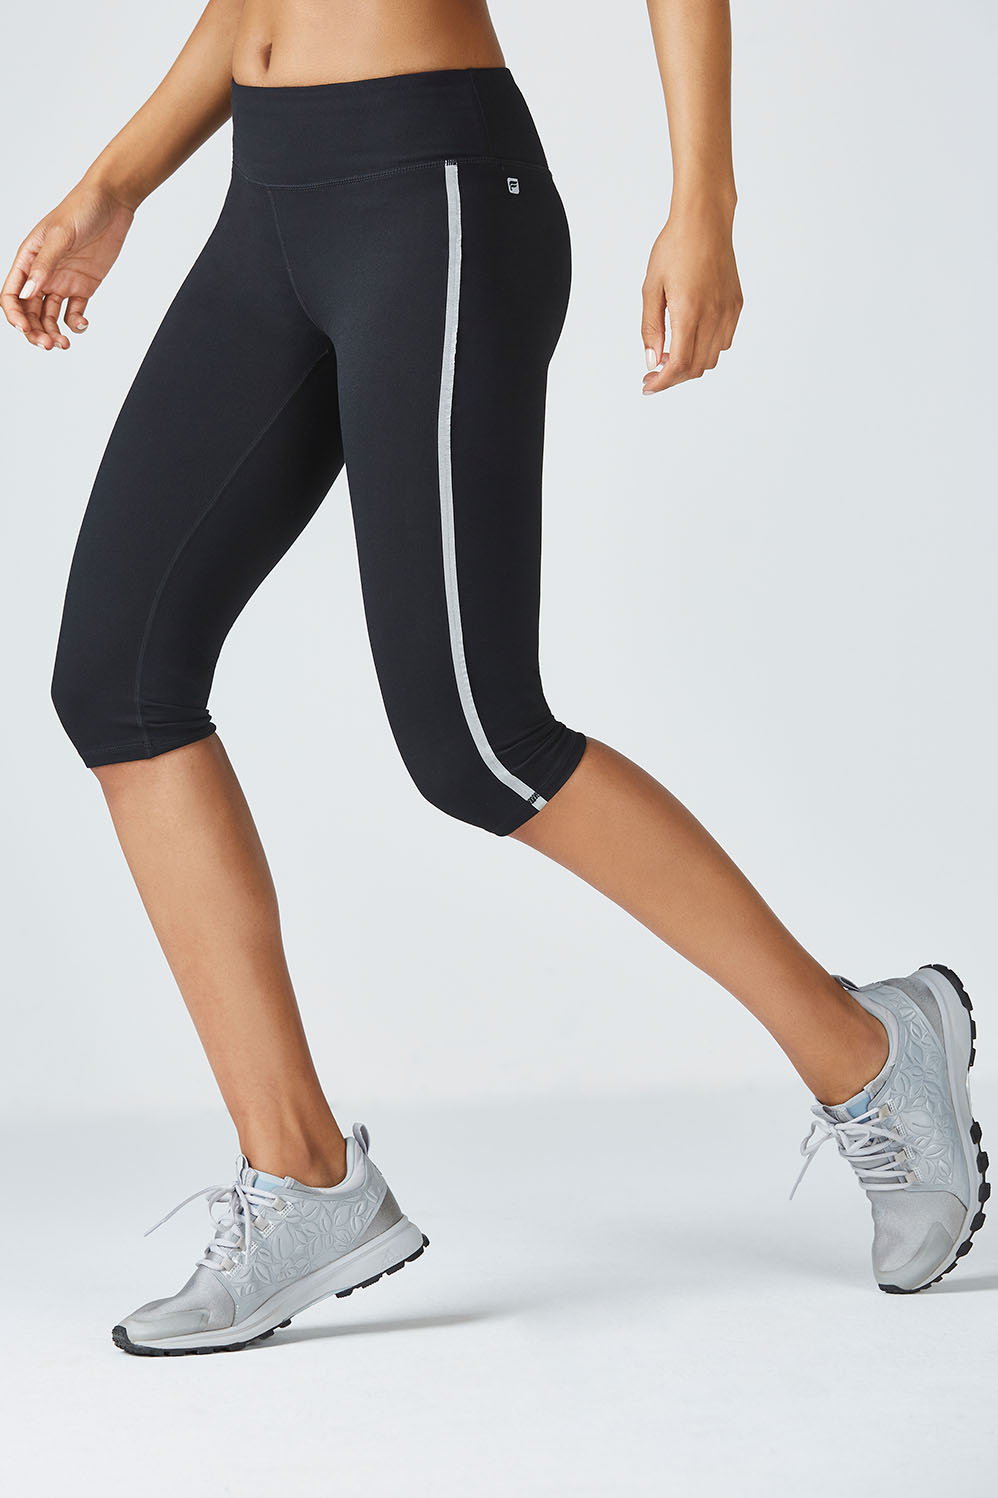 Fabletics Fashion Mckenzie Crop Womens Black Size XS Stripe right in our moisture-wicking, compression crop with bonded silver tape down the leg. A convenient back zipper will store your card during your cardio session, and chafe-free stitching will keep you feeling good from start to finish. UPF 50+, Bonded Zipper Pocket in Back for Key/Card, All-Way Stretch, Chafe-Resistant, Silver Bonded Tape on Leg, Moisture-Wicking, Compression Fabric, Fit. Fitted. Hits Below The Knee, Inseam. 15 1/2 , Fabric Content. 88% Polyester/12% Elastane